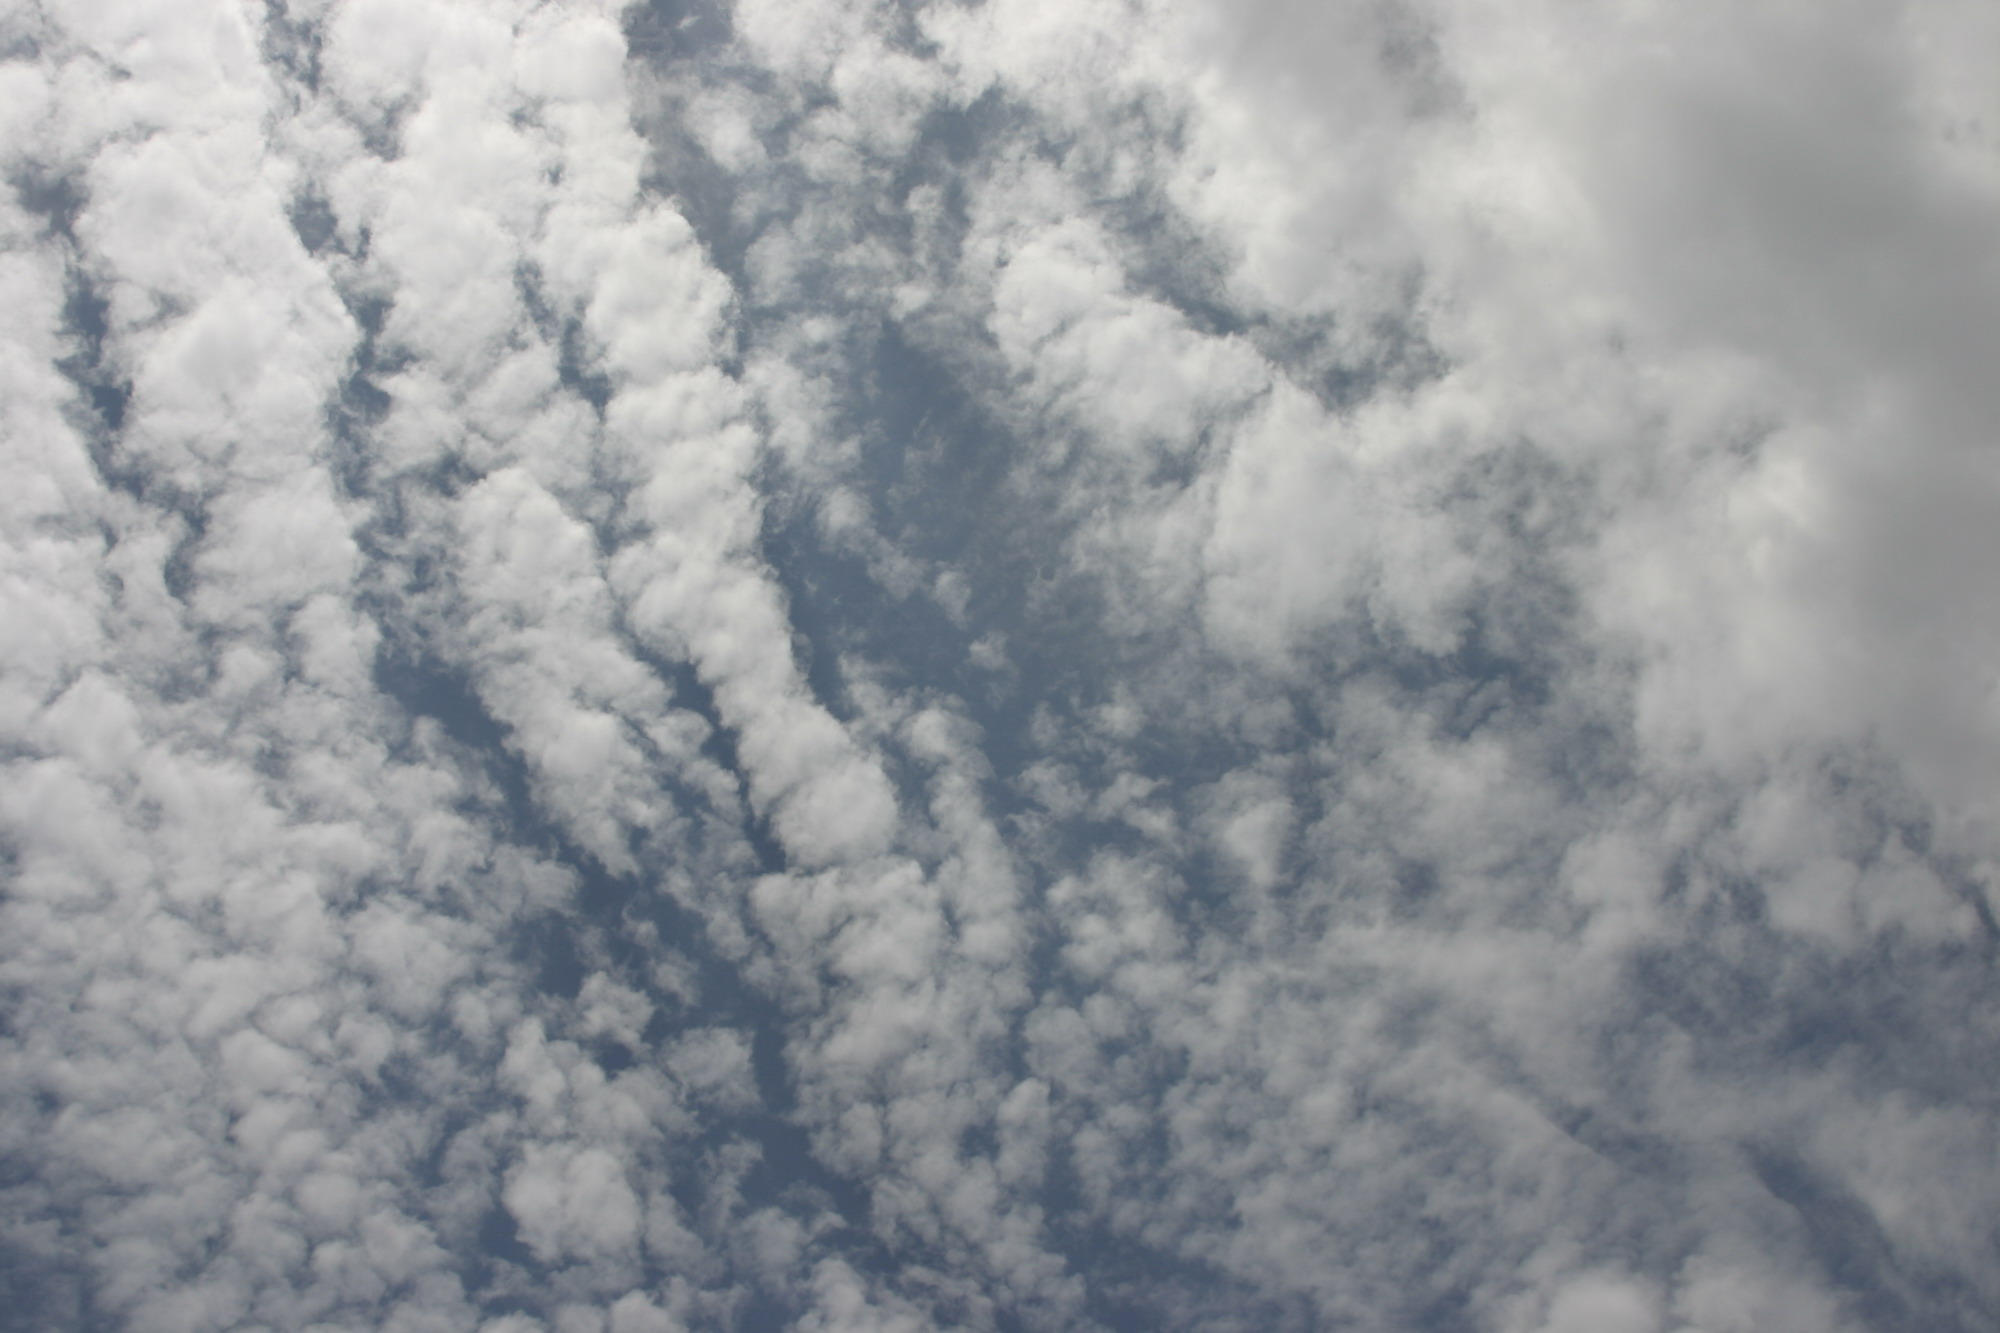 clouds 3 by eikonstock